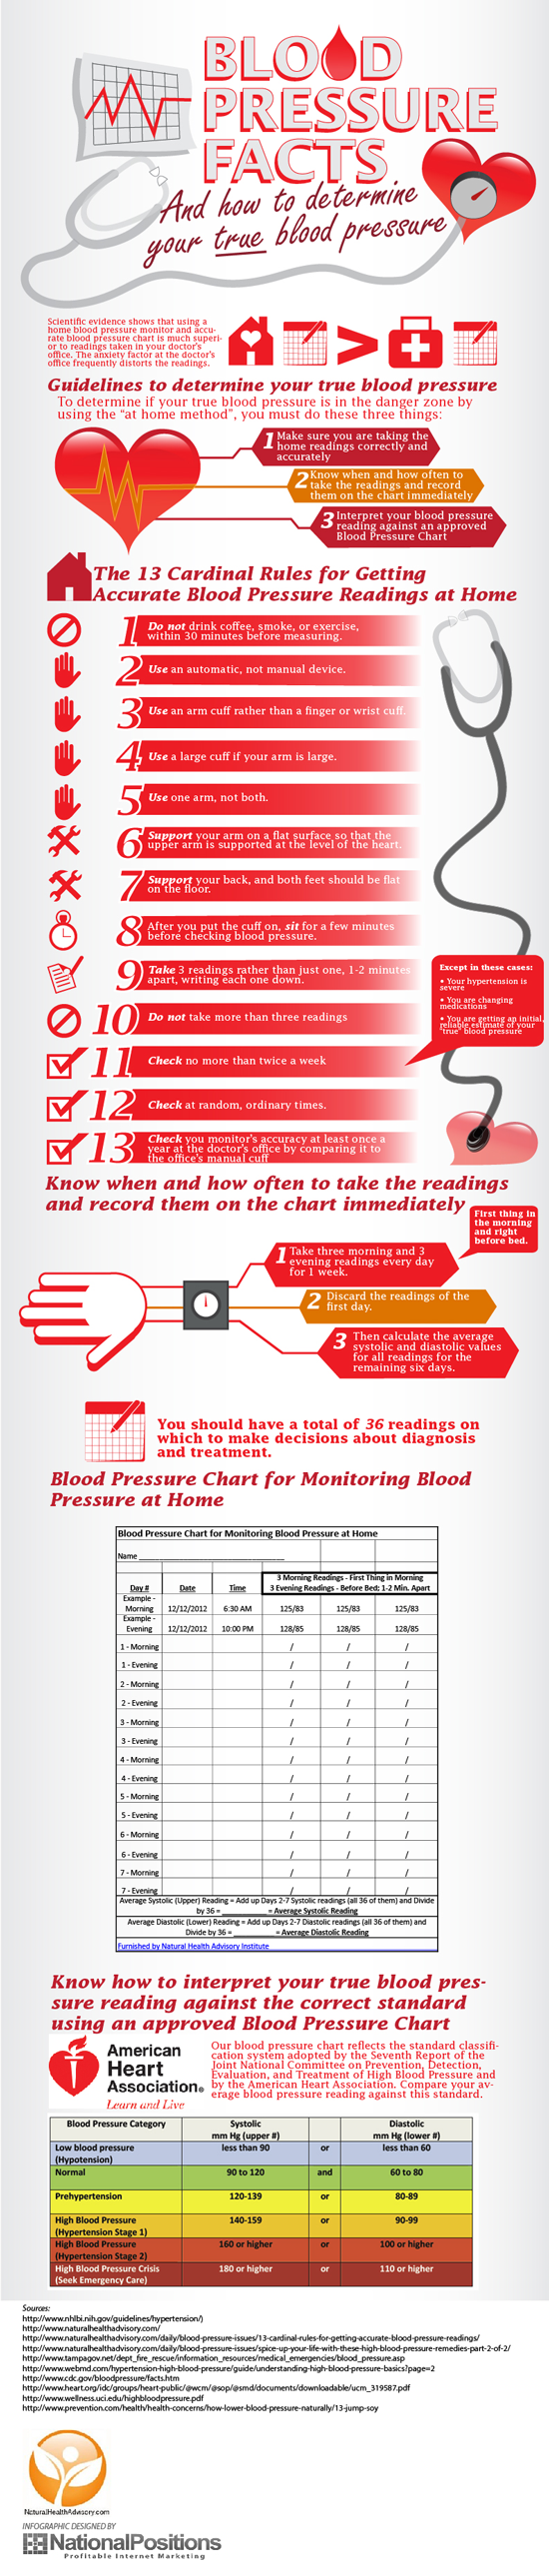 Blood Pressure Chart Infographic – How to Determine Your True Blood Pressure